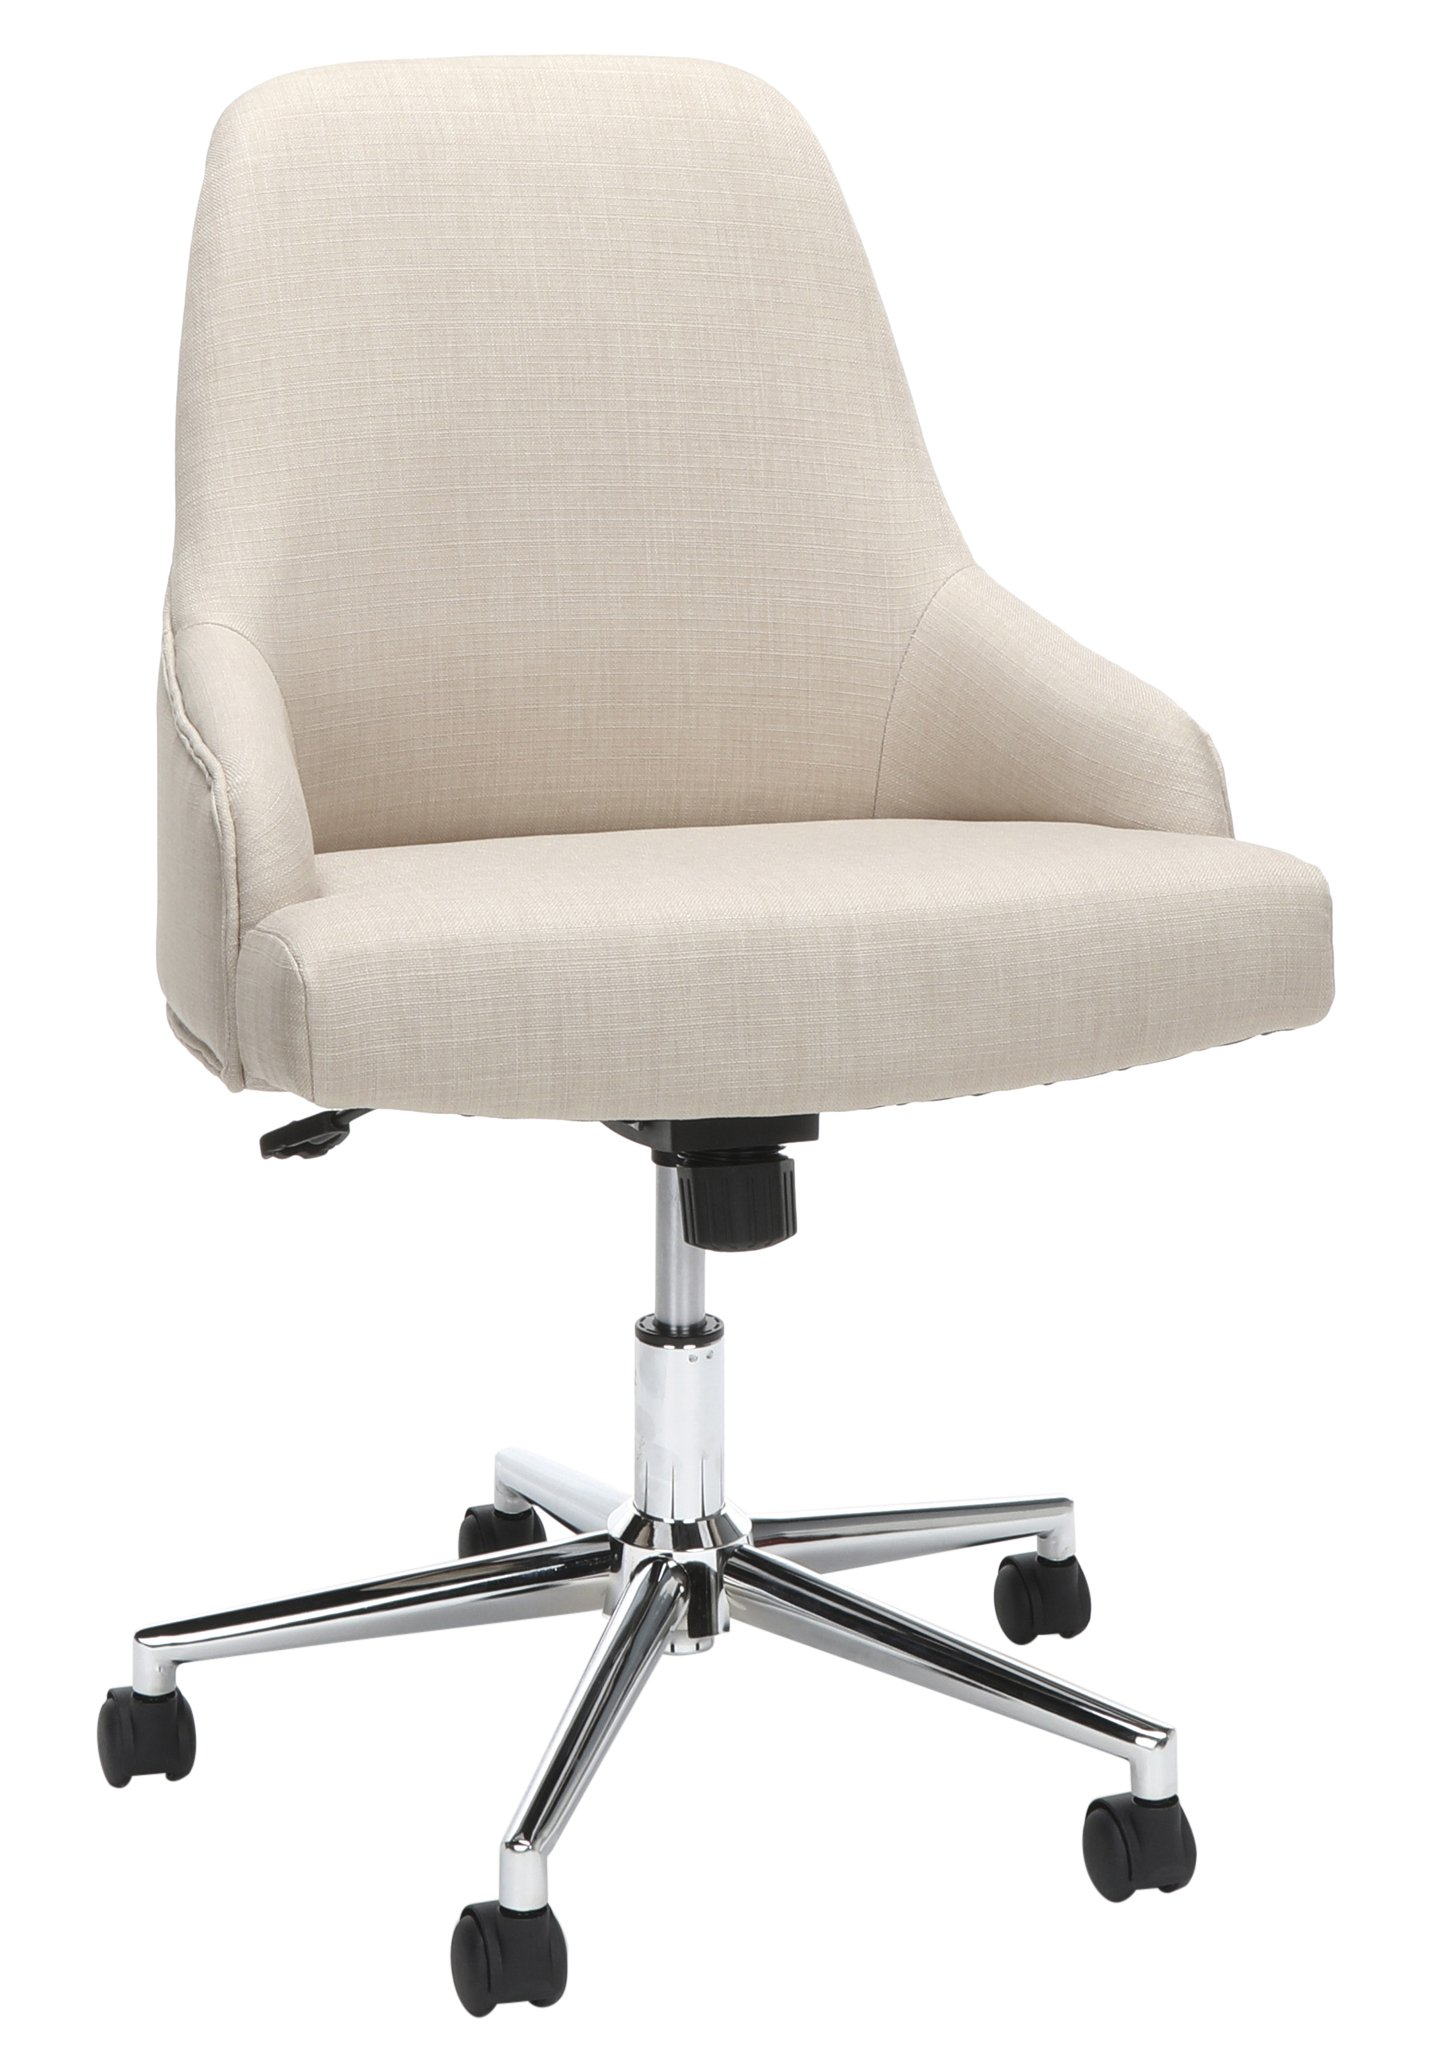 Essentials Upholstered Home Desk Chair - Ergonomic Office Chair for Conference Room or Office, Tan (ESS-2086-TAN) by OFM